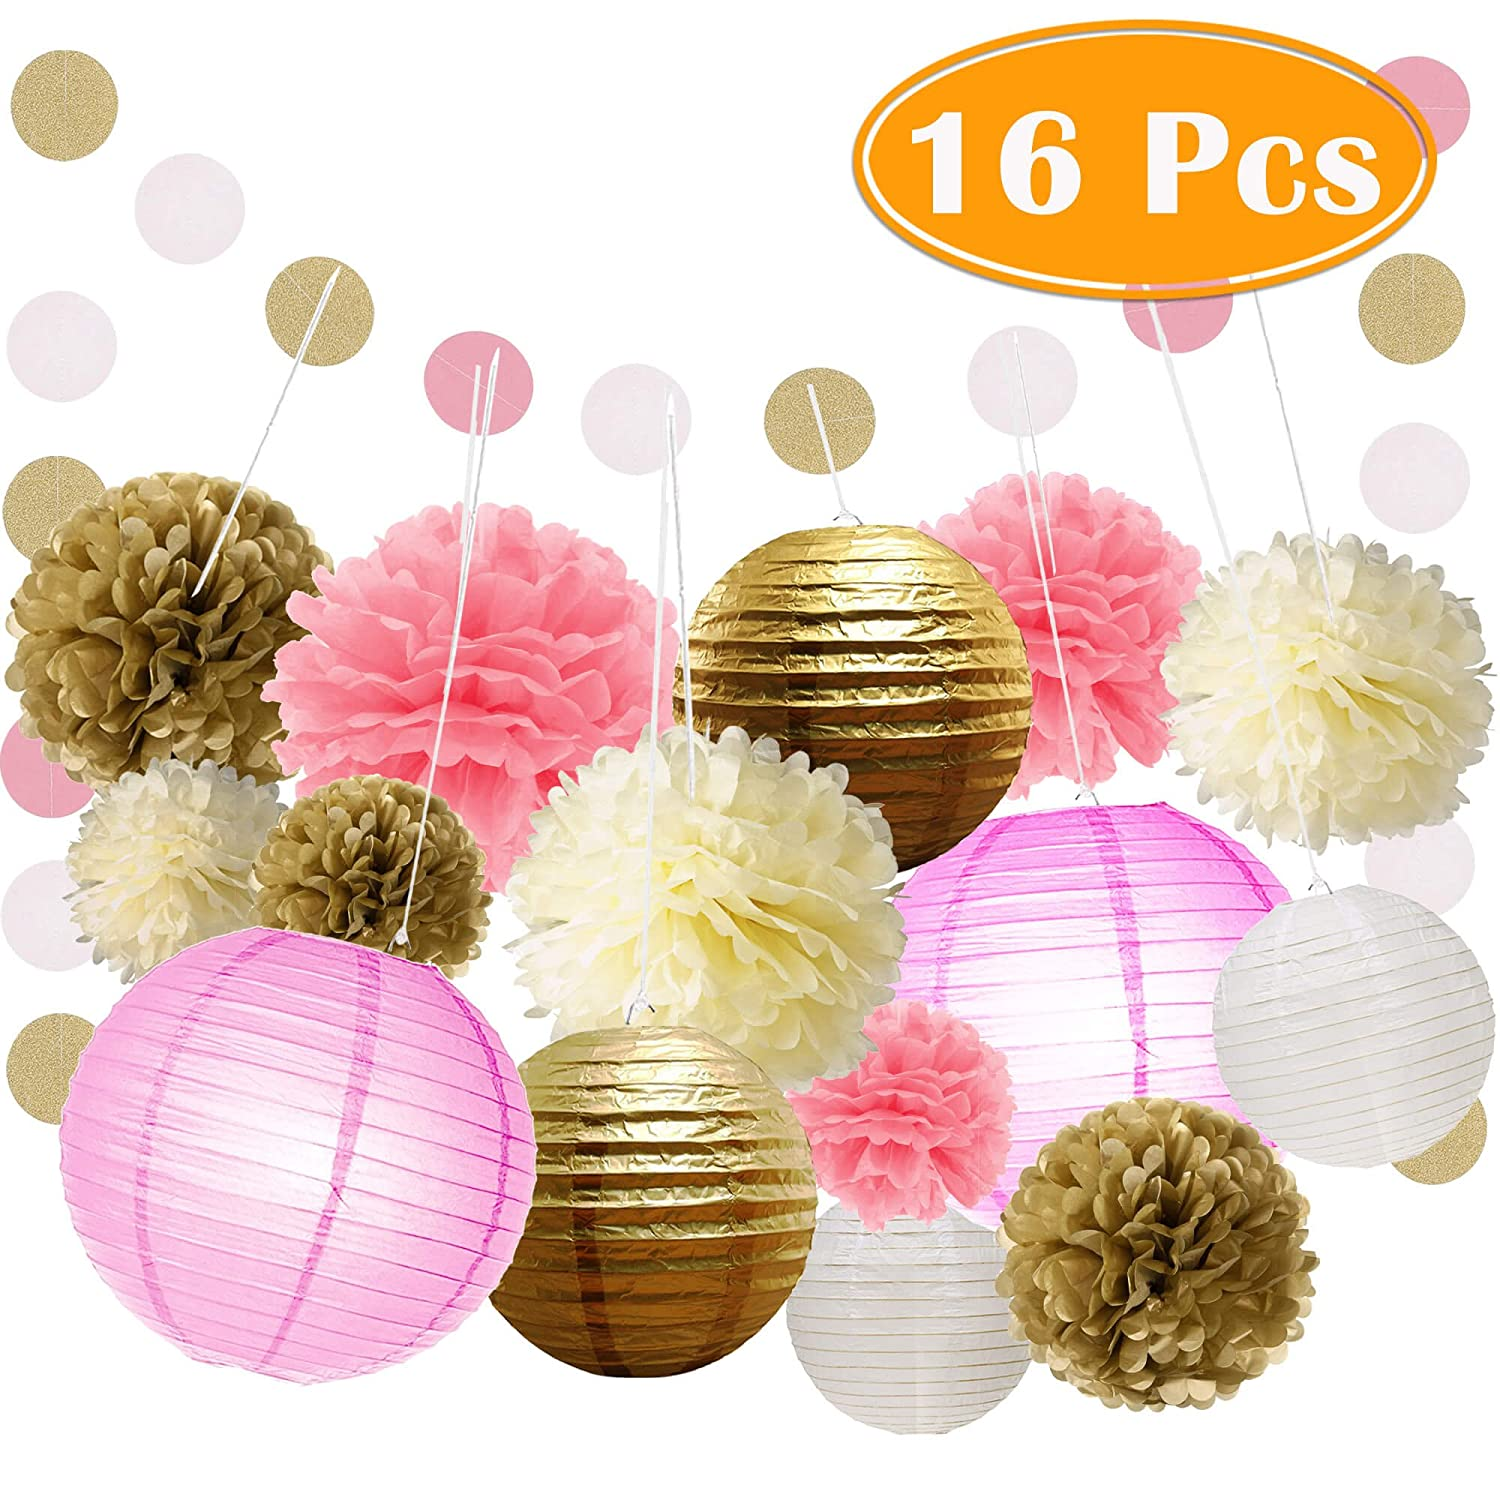 Amazon.com: Paxcoo 16 Pcs Pink and Gold Party Supplies with Paper ...